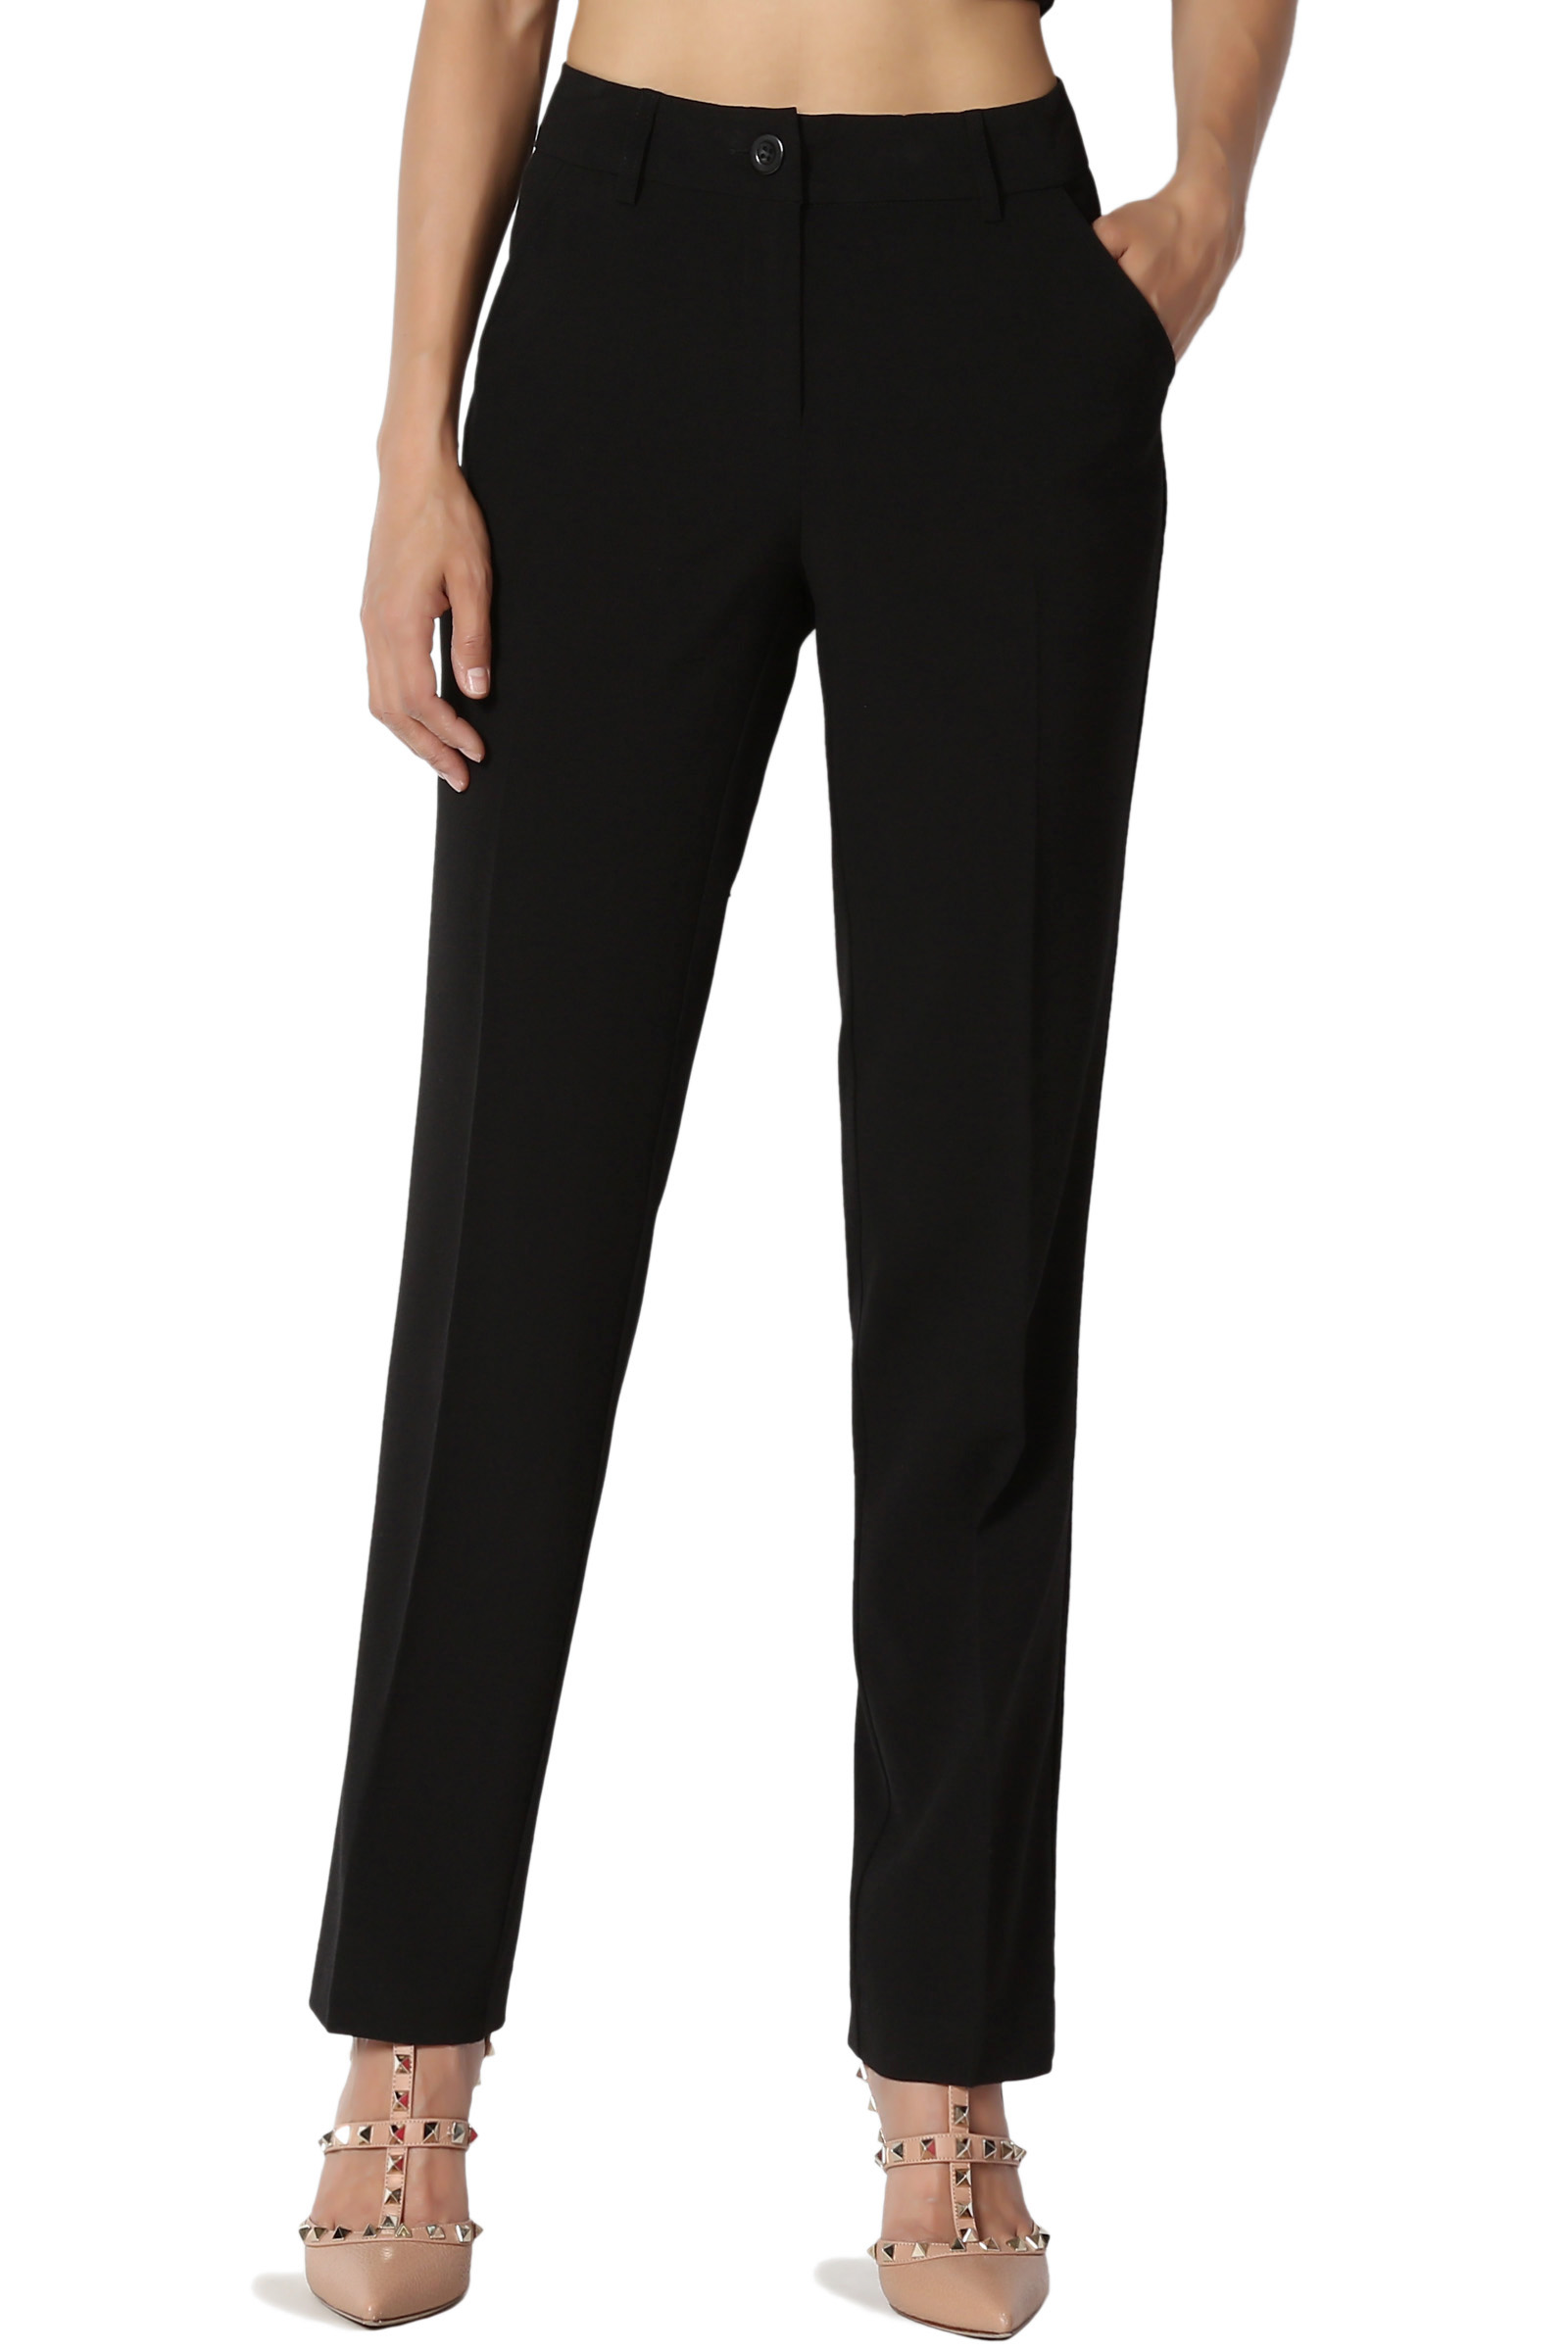 TheMogan Women's S~3X Straight Crop Leg Mid Rise Trousers Work Business Casual Pants